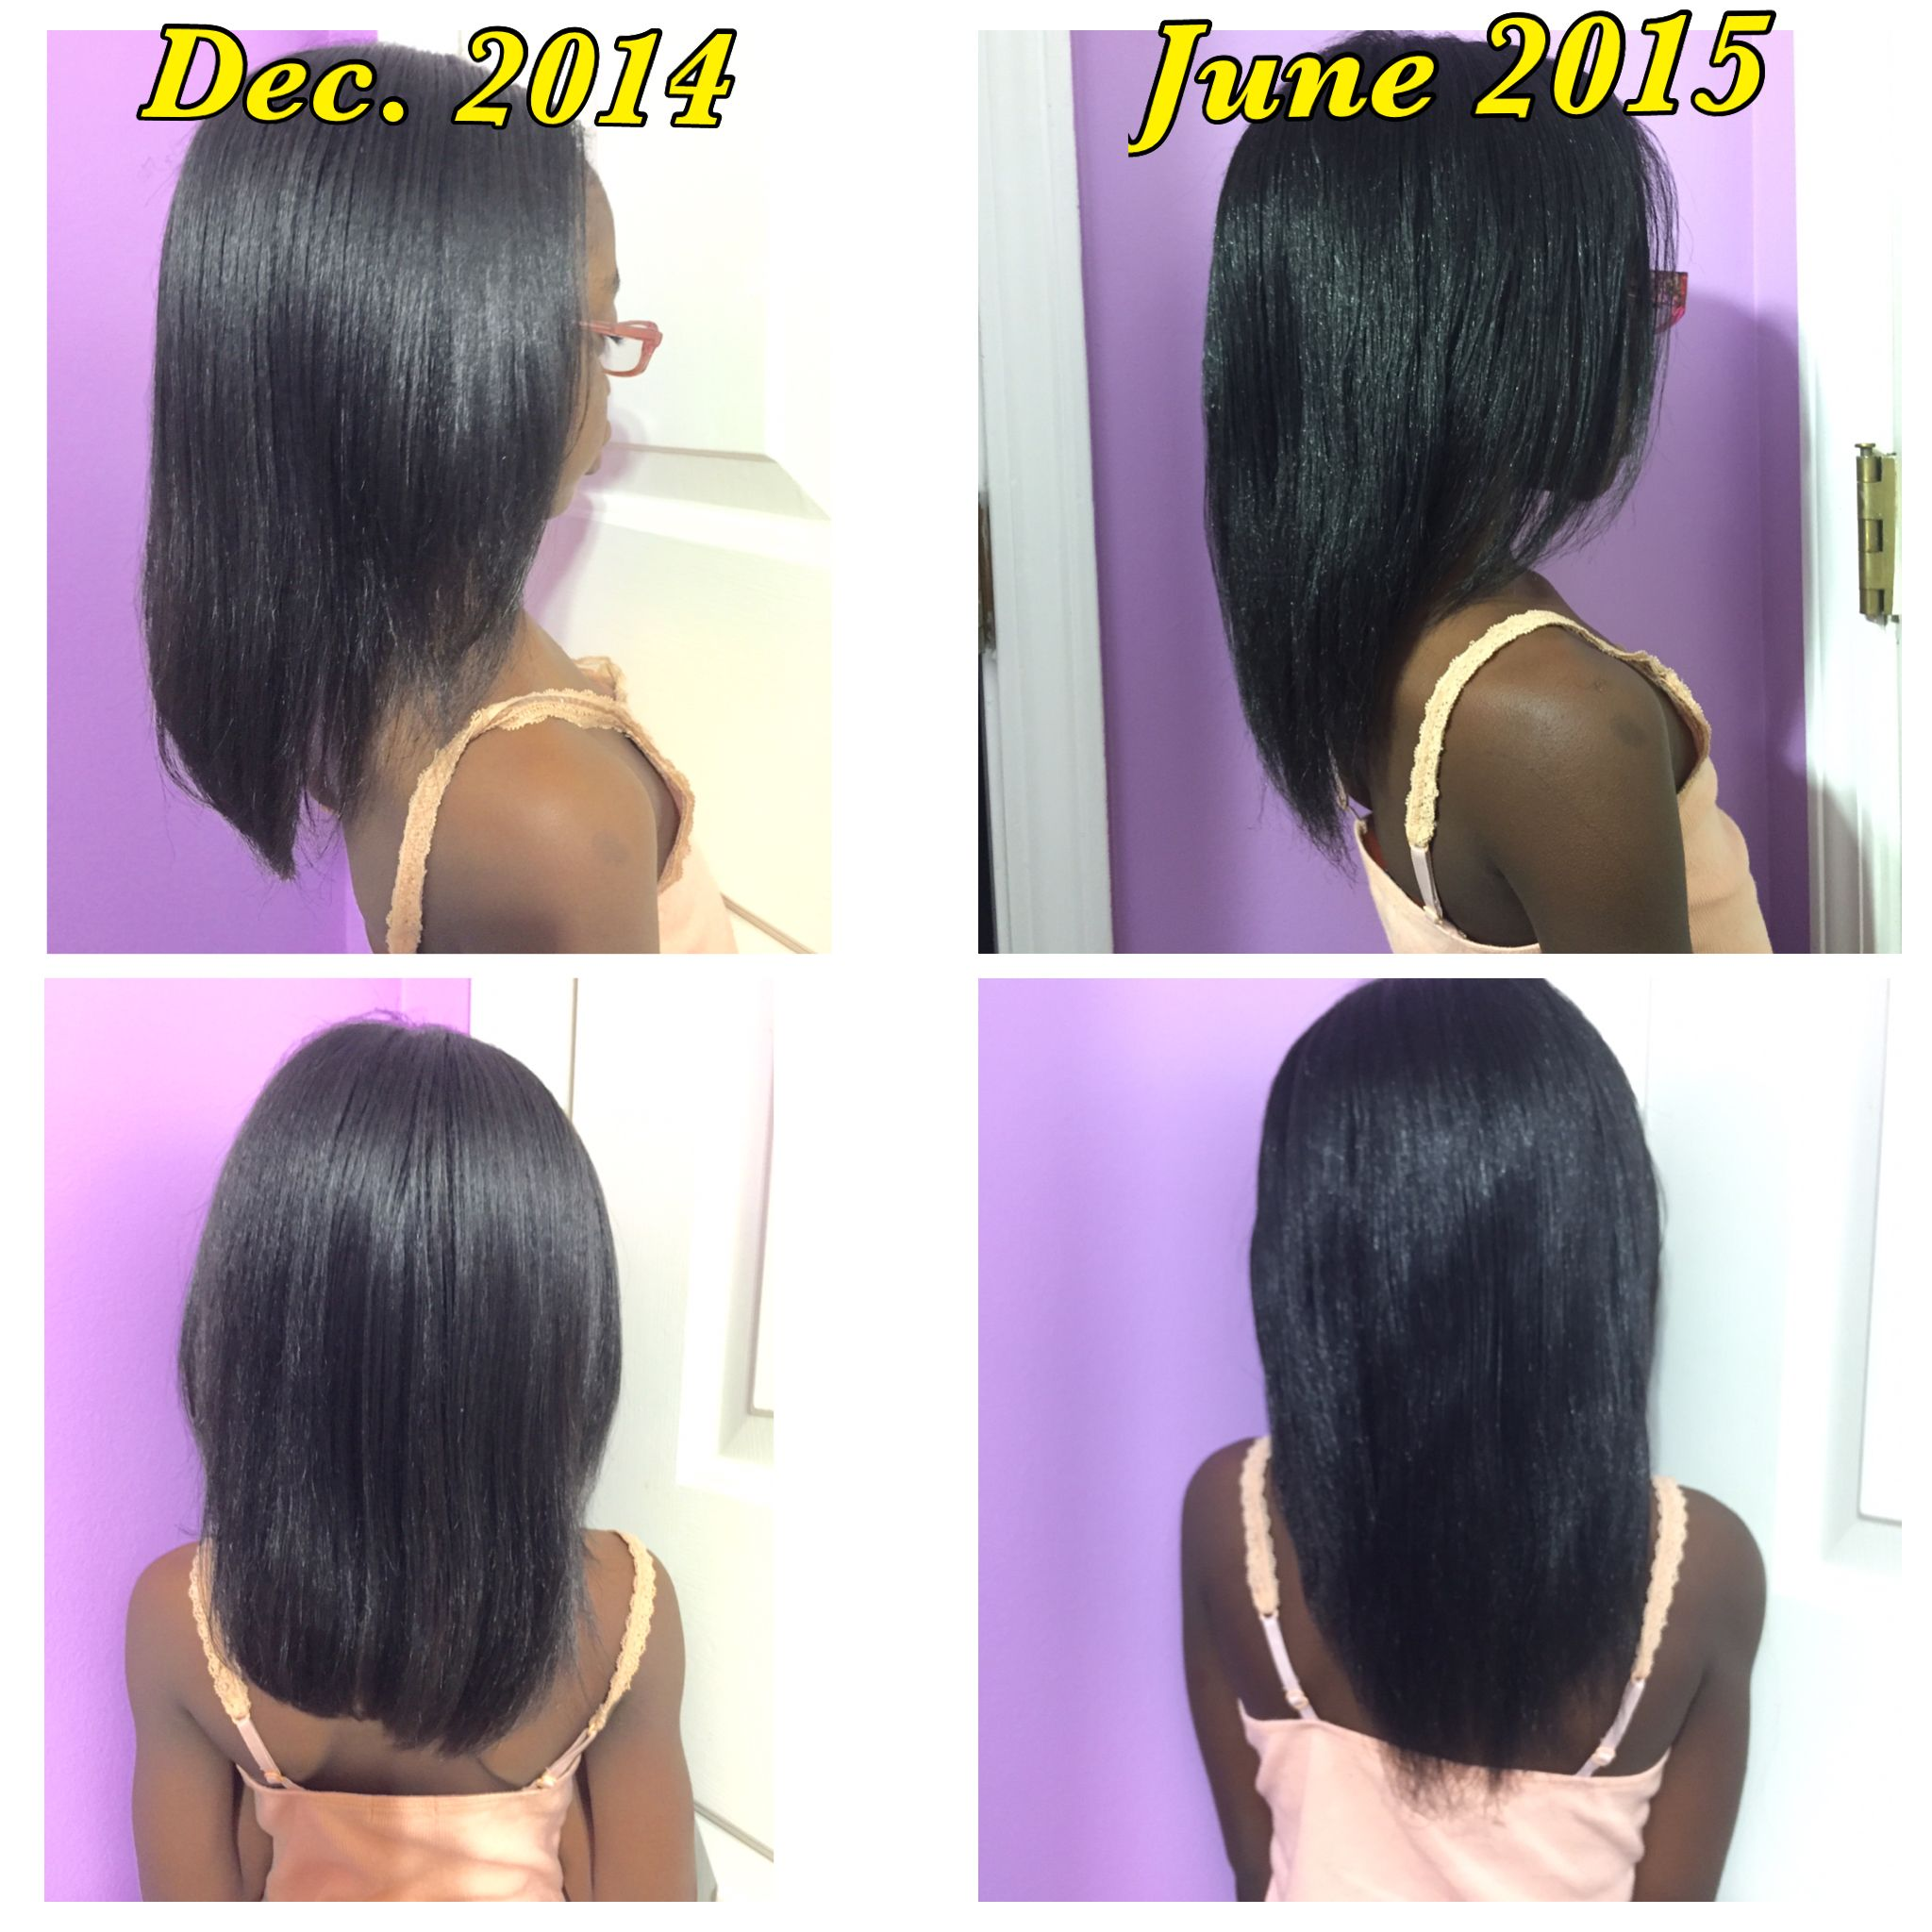 Hair growth after hair has been braided 6 months in ...